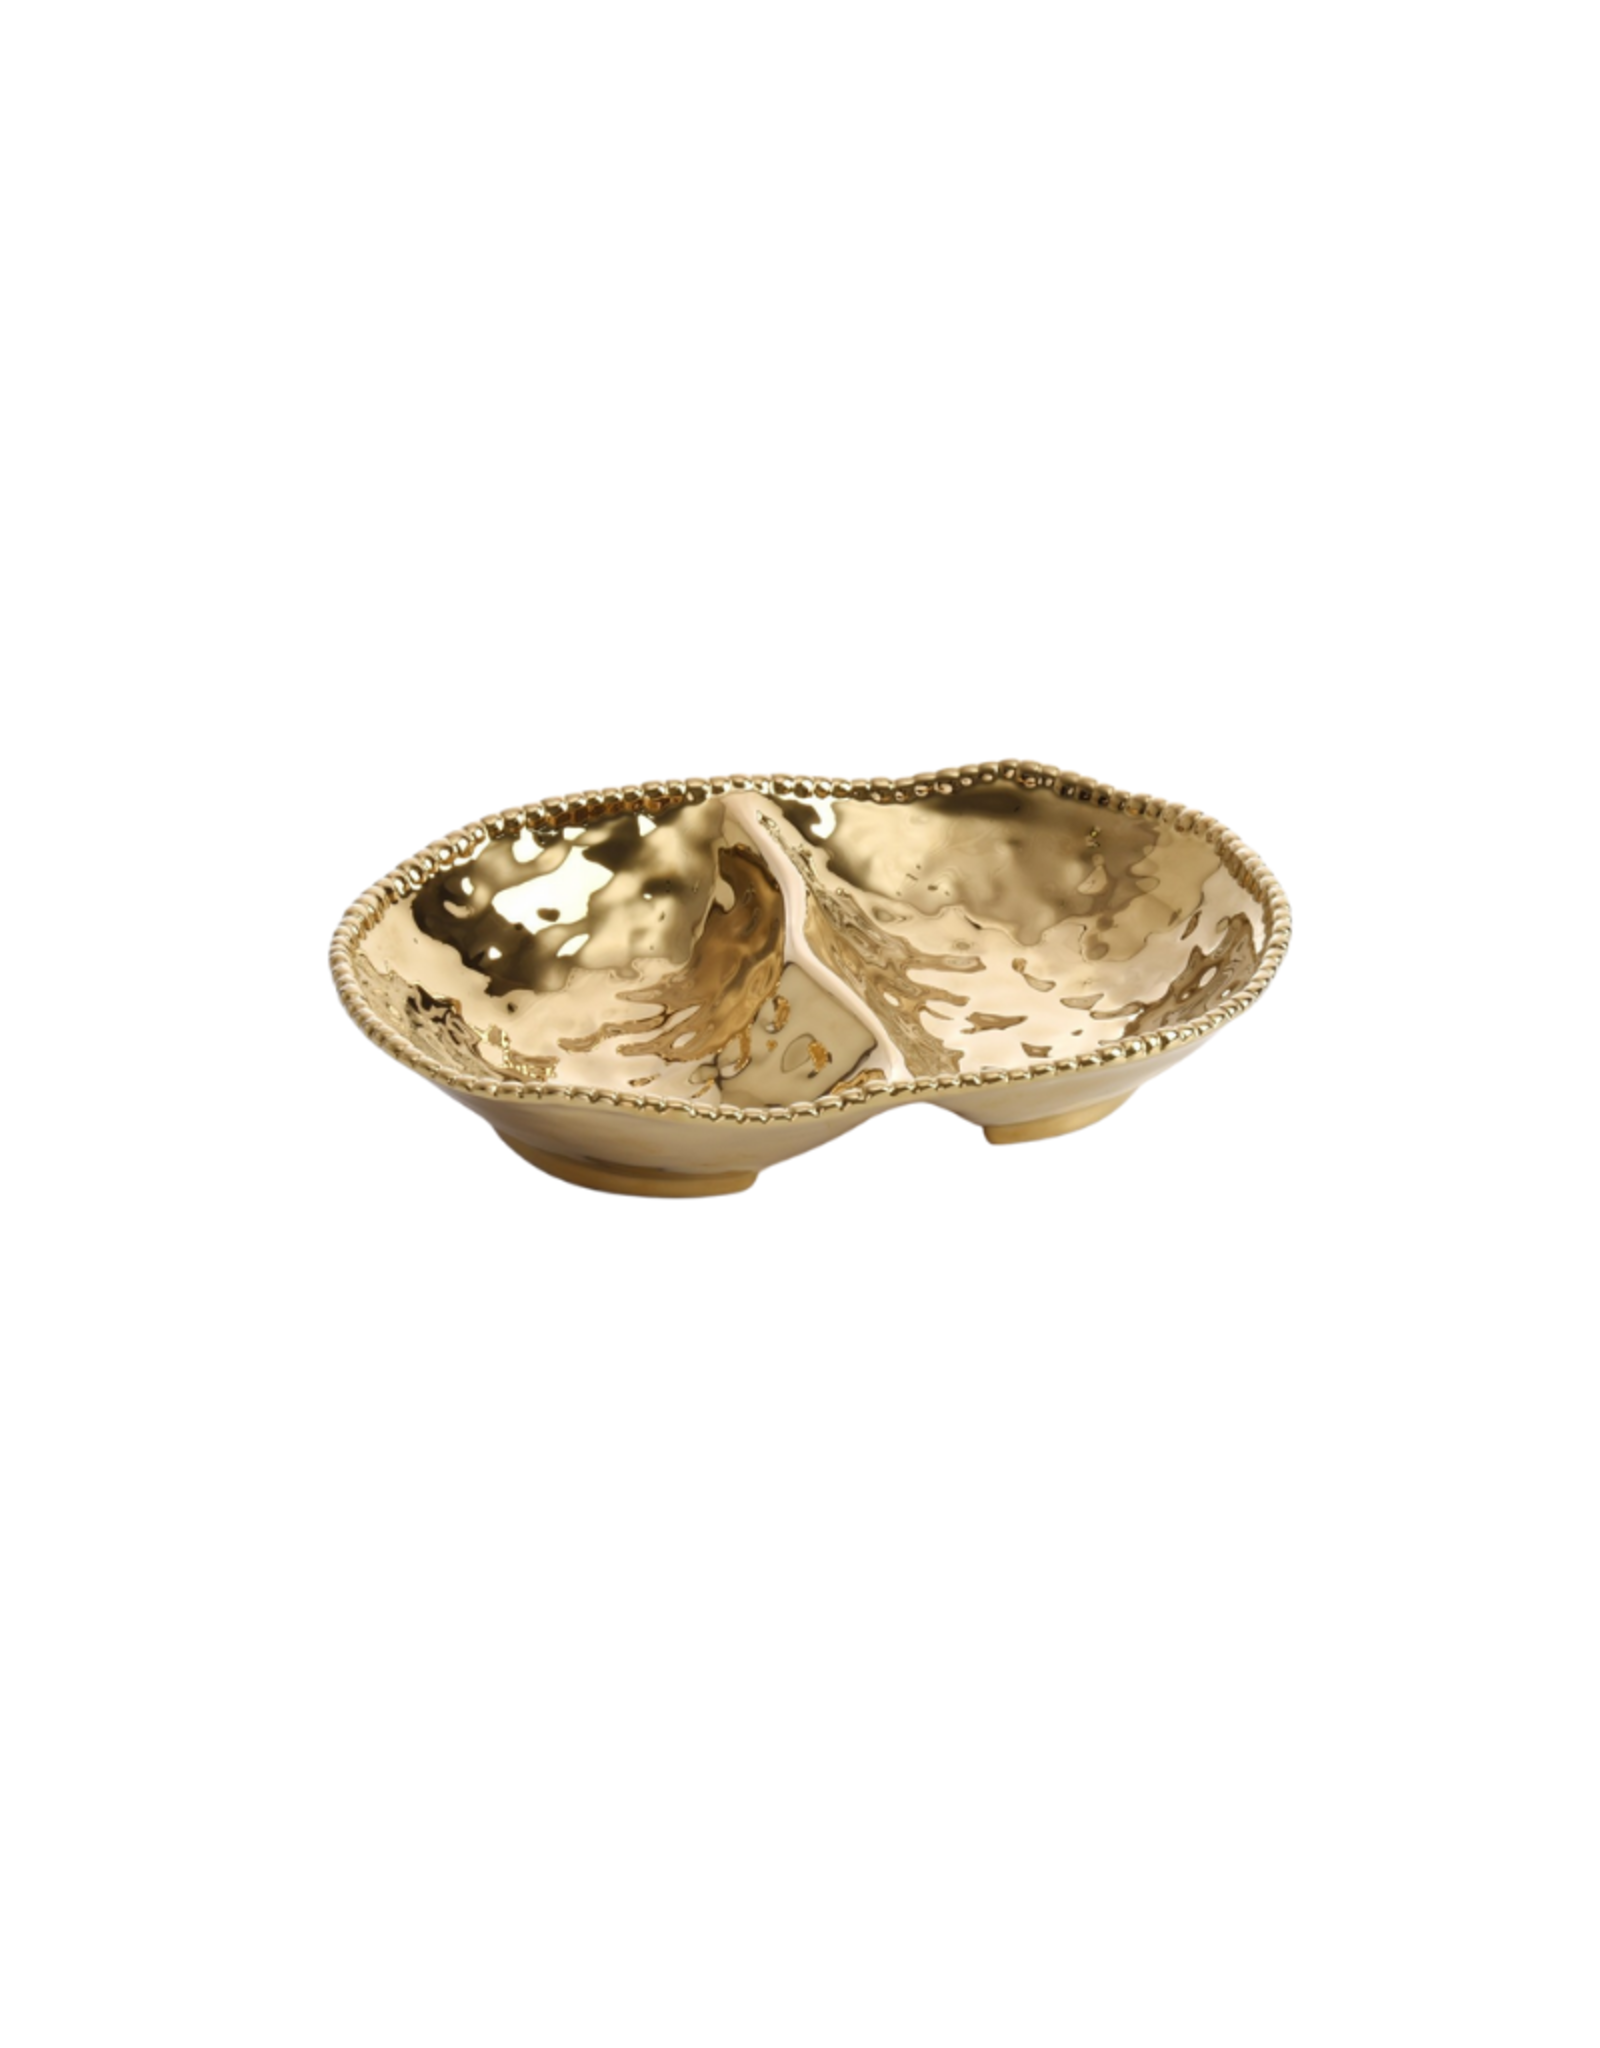 Two Section Gold Serving Bowl